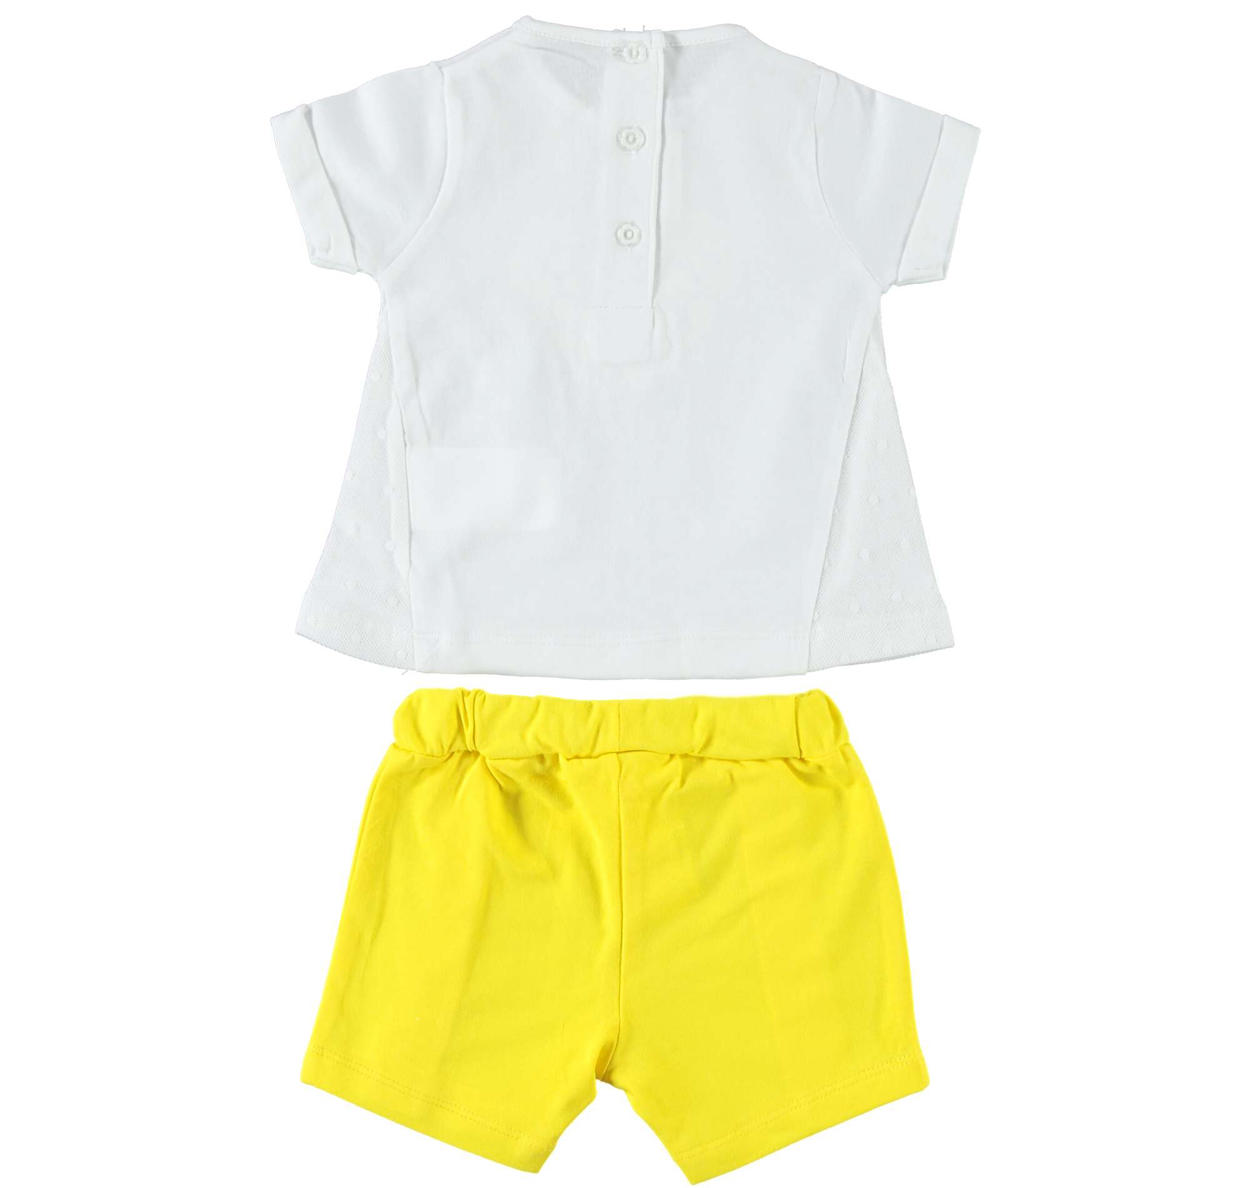 4a1dfc216e9 Two-piece baby girl Summer outfit full of style details for newborn from 0  to